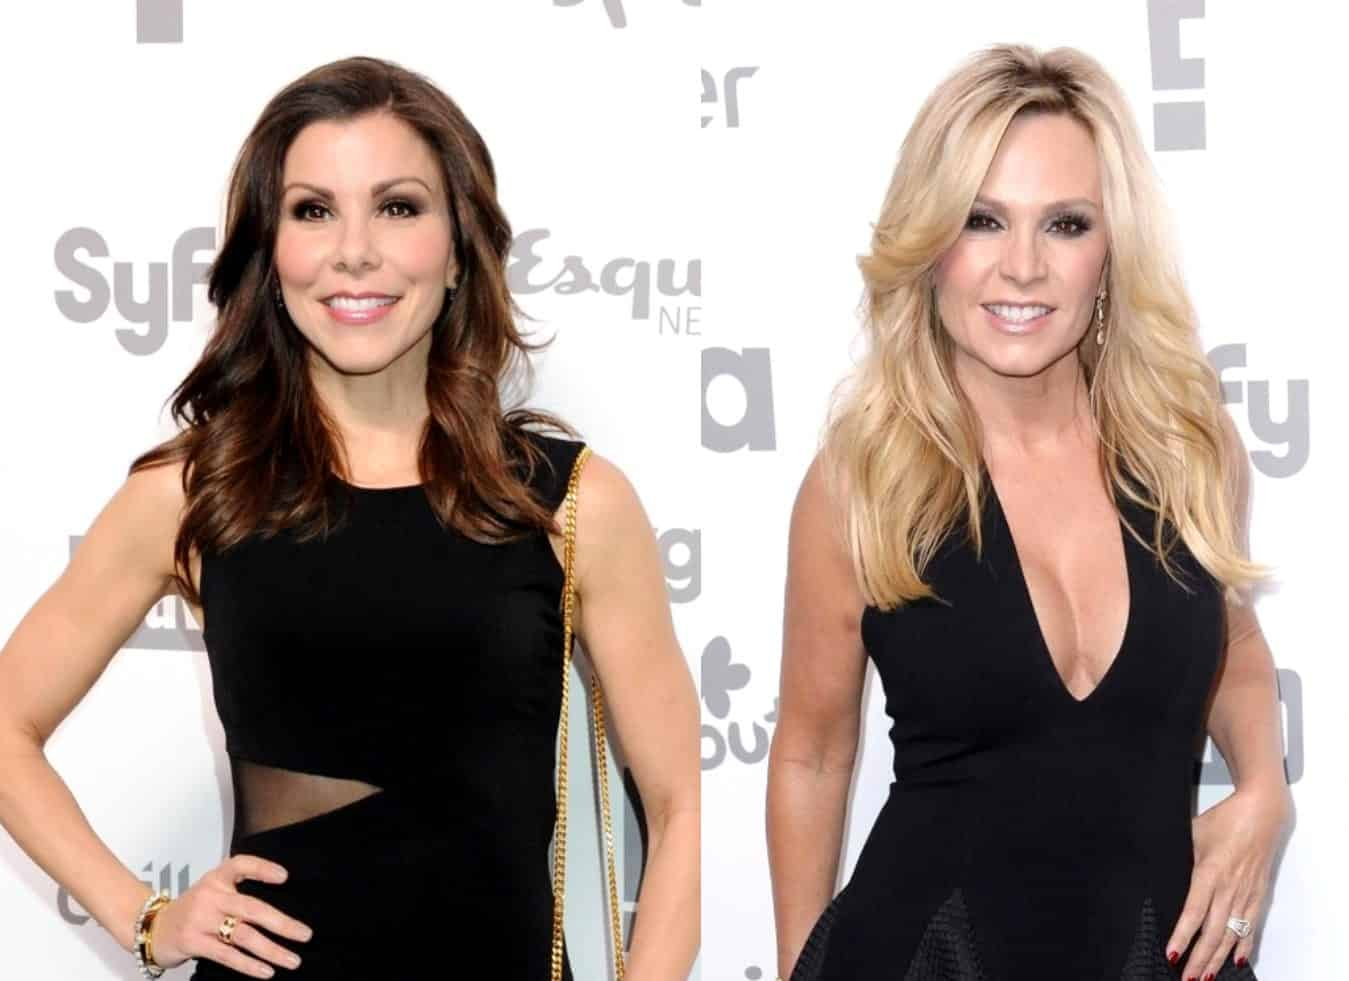 "Heather Dubrow Shades Tamra Judge For Saying She Was Demoted on RHOC, Says ""No One Should Speak For Me Except Me,"" Plus She Discusses Daughter Max Coming Out"